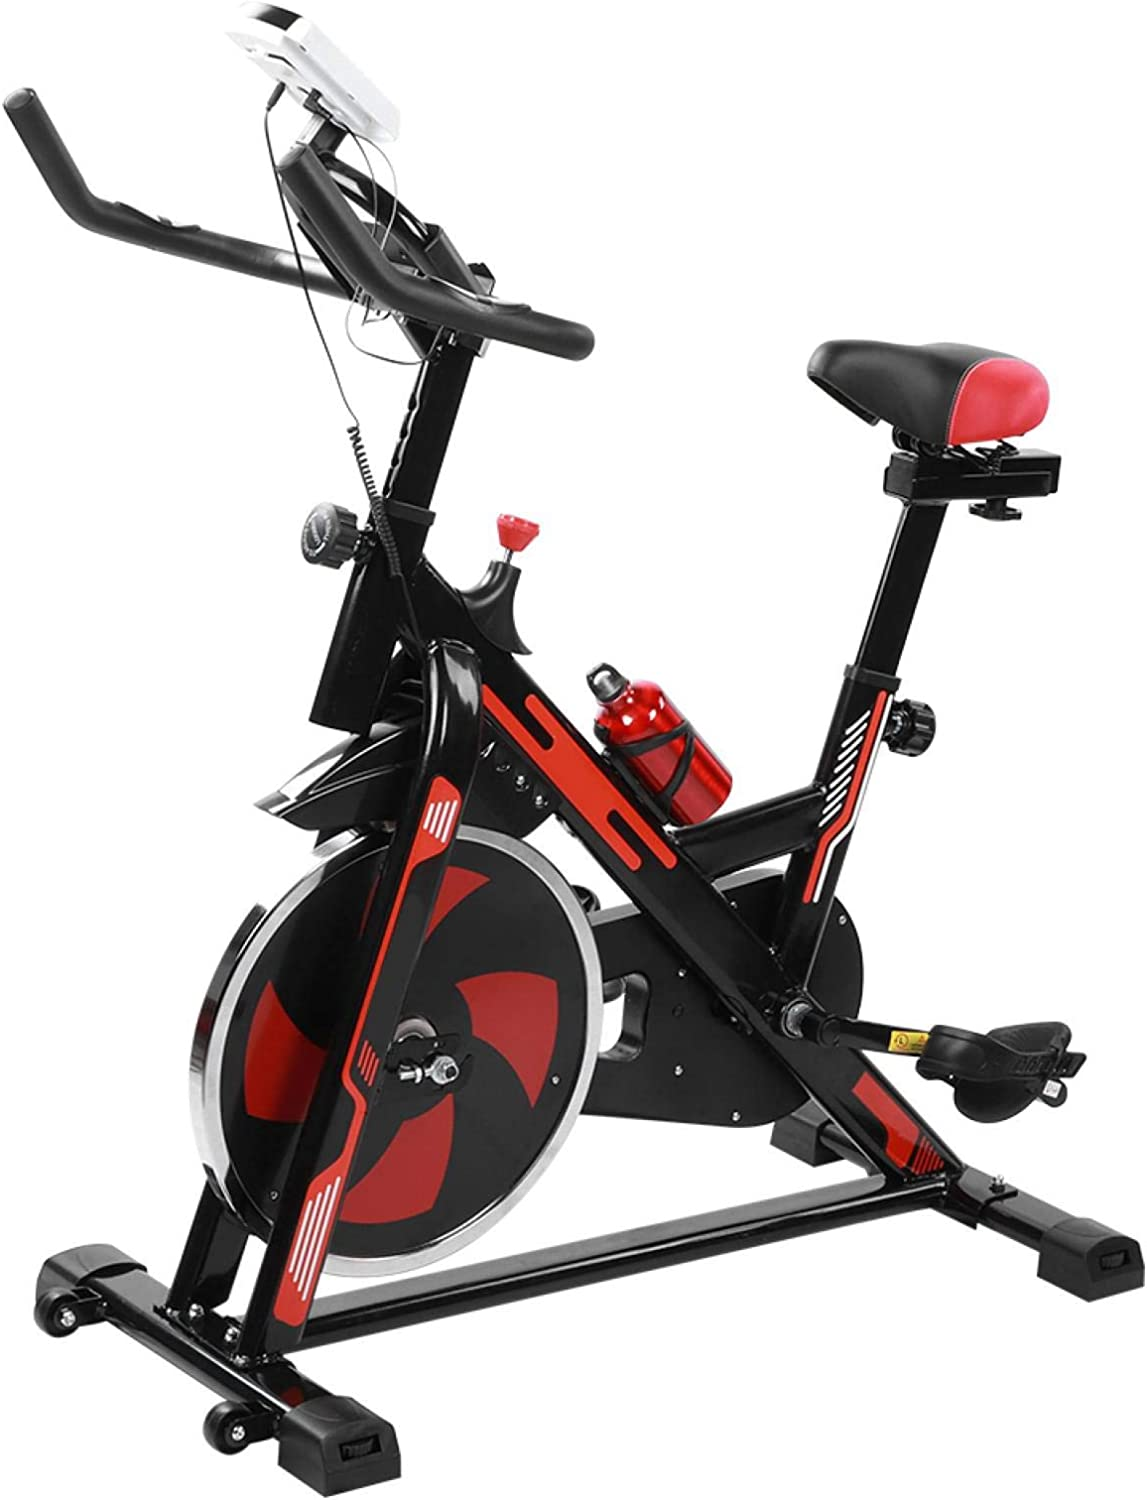 Cloudbox Exercise Bike Max 70% OFF Mute Dynamic In Fitness Home Topics on TV Bicycle